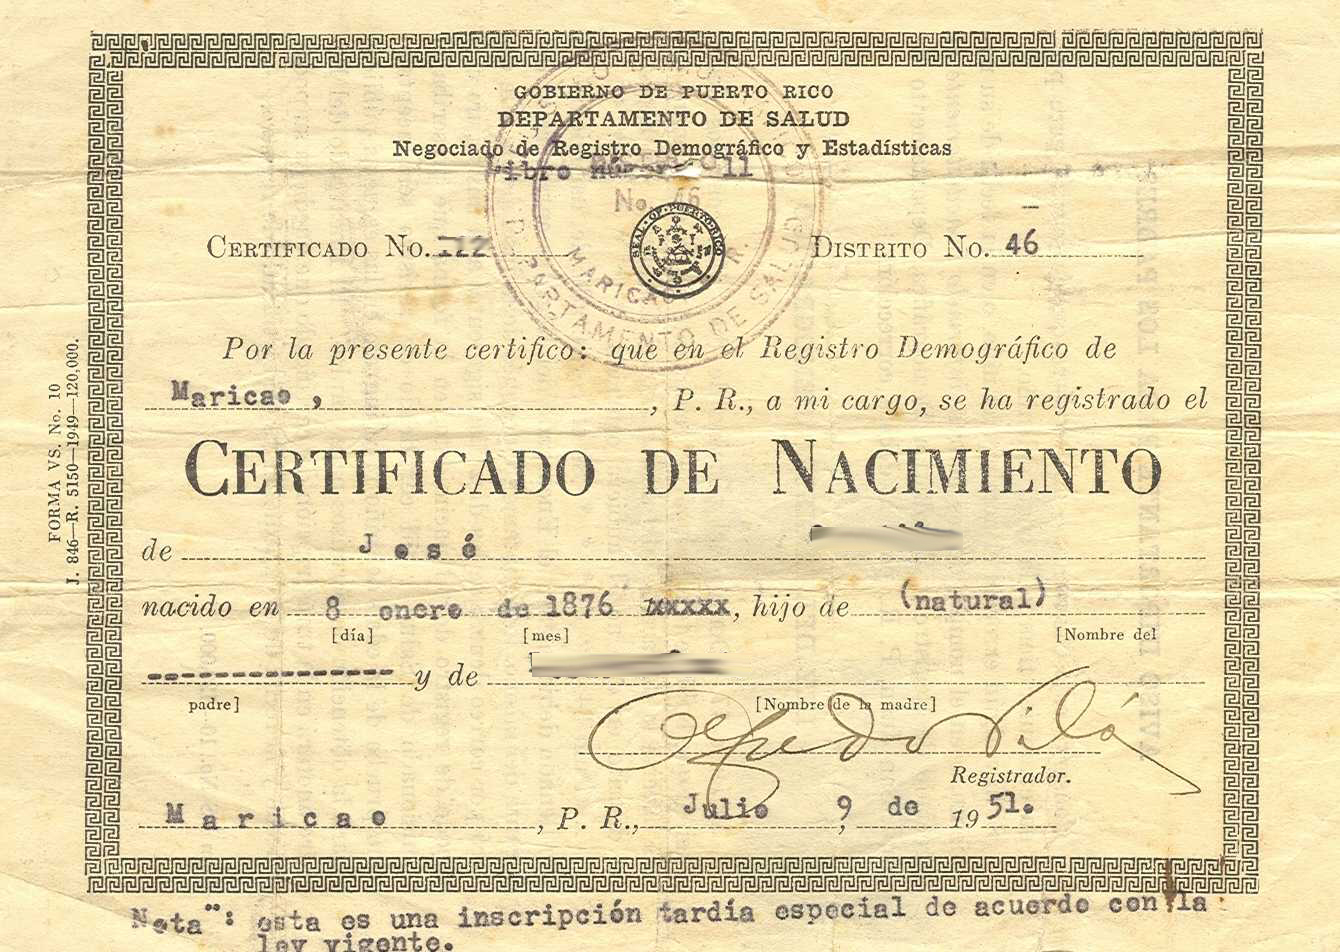 Puerto rico has a birth certificate mess que fregados what a mess for those born in puerto rico i first read this in time magazine and now came across it in the daily news aiddatafo Image collections